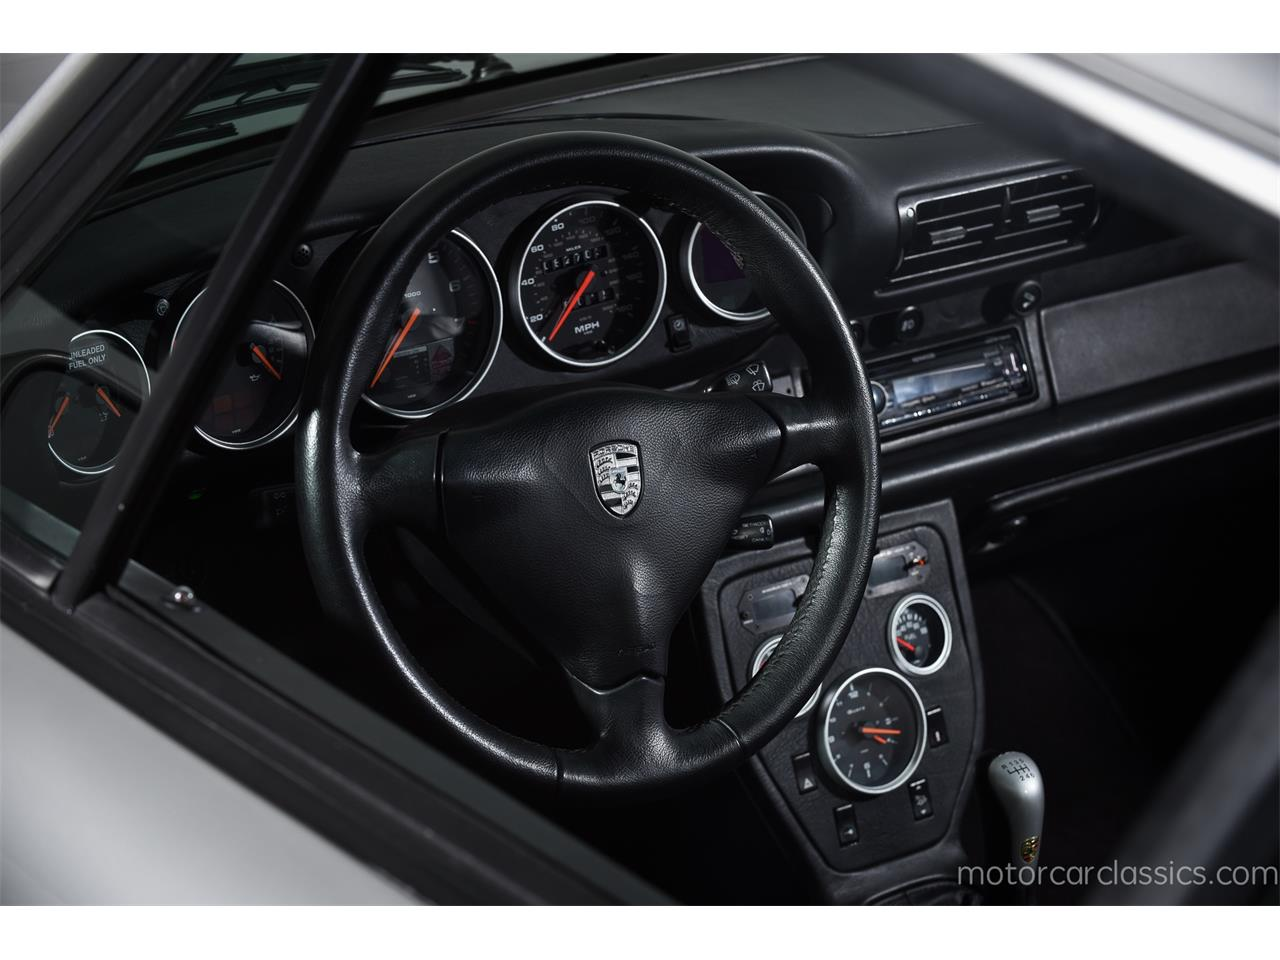 Large Picture of '96 Porsche 911 Turbo located in Farmingdale New York - $69,900.00 - MBOA